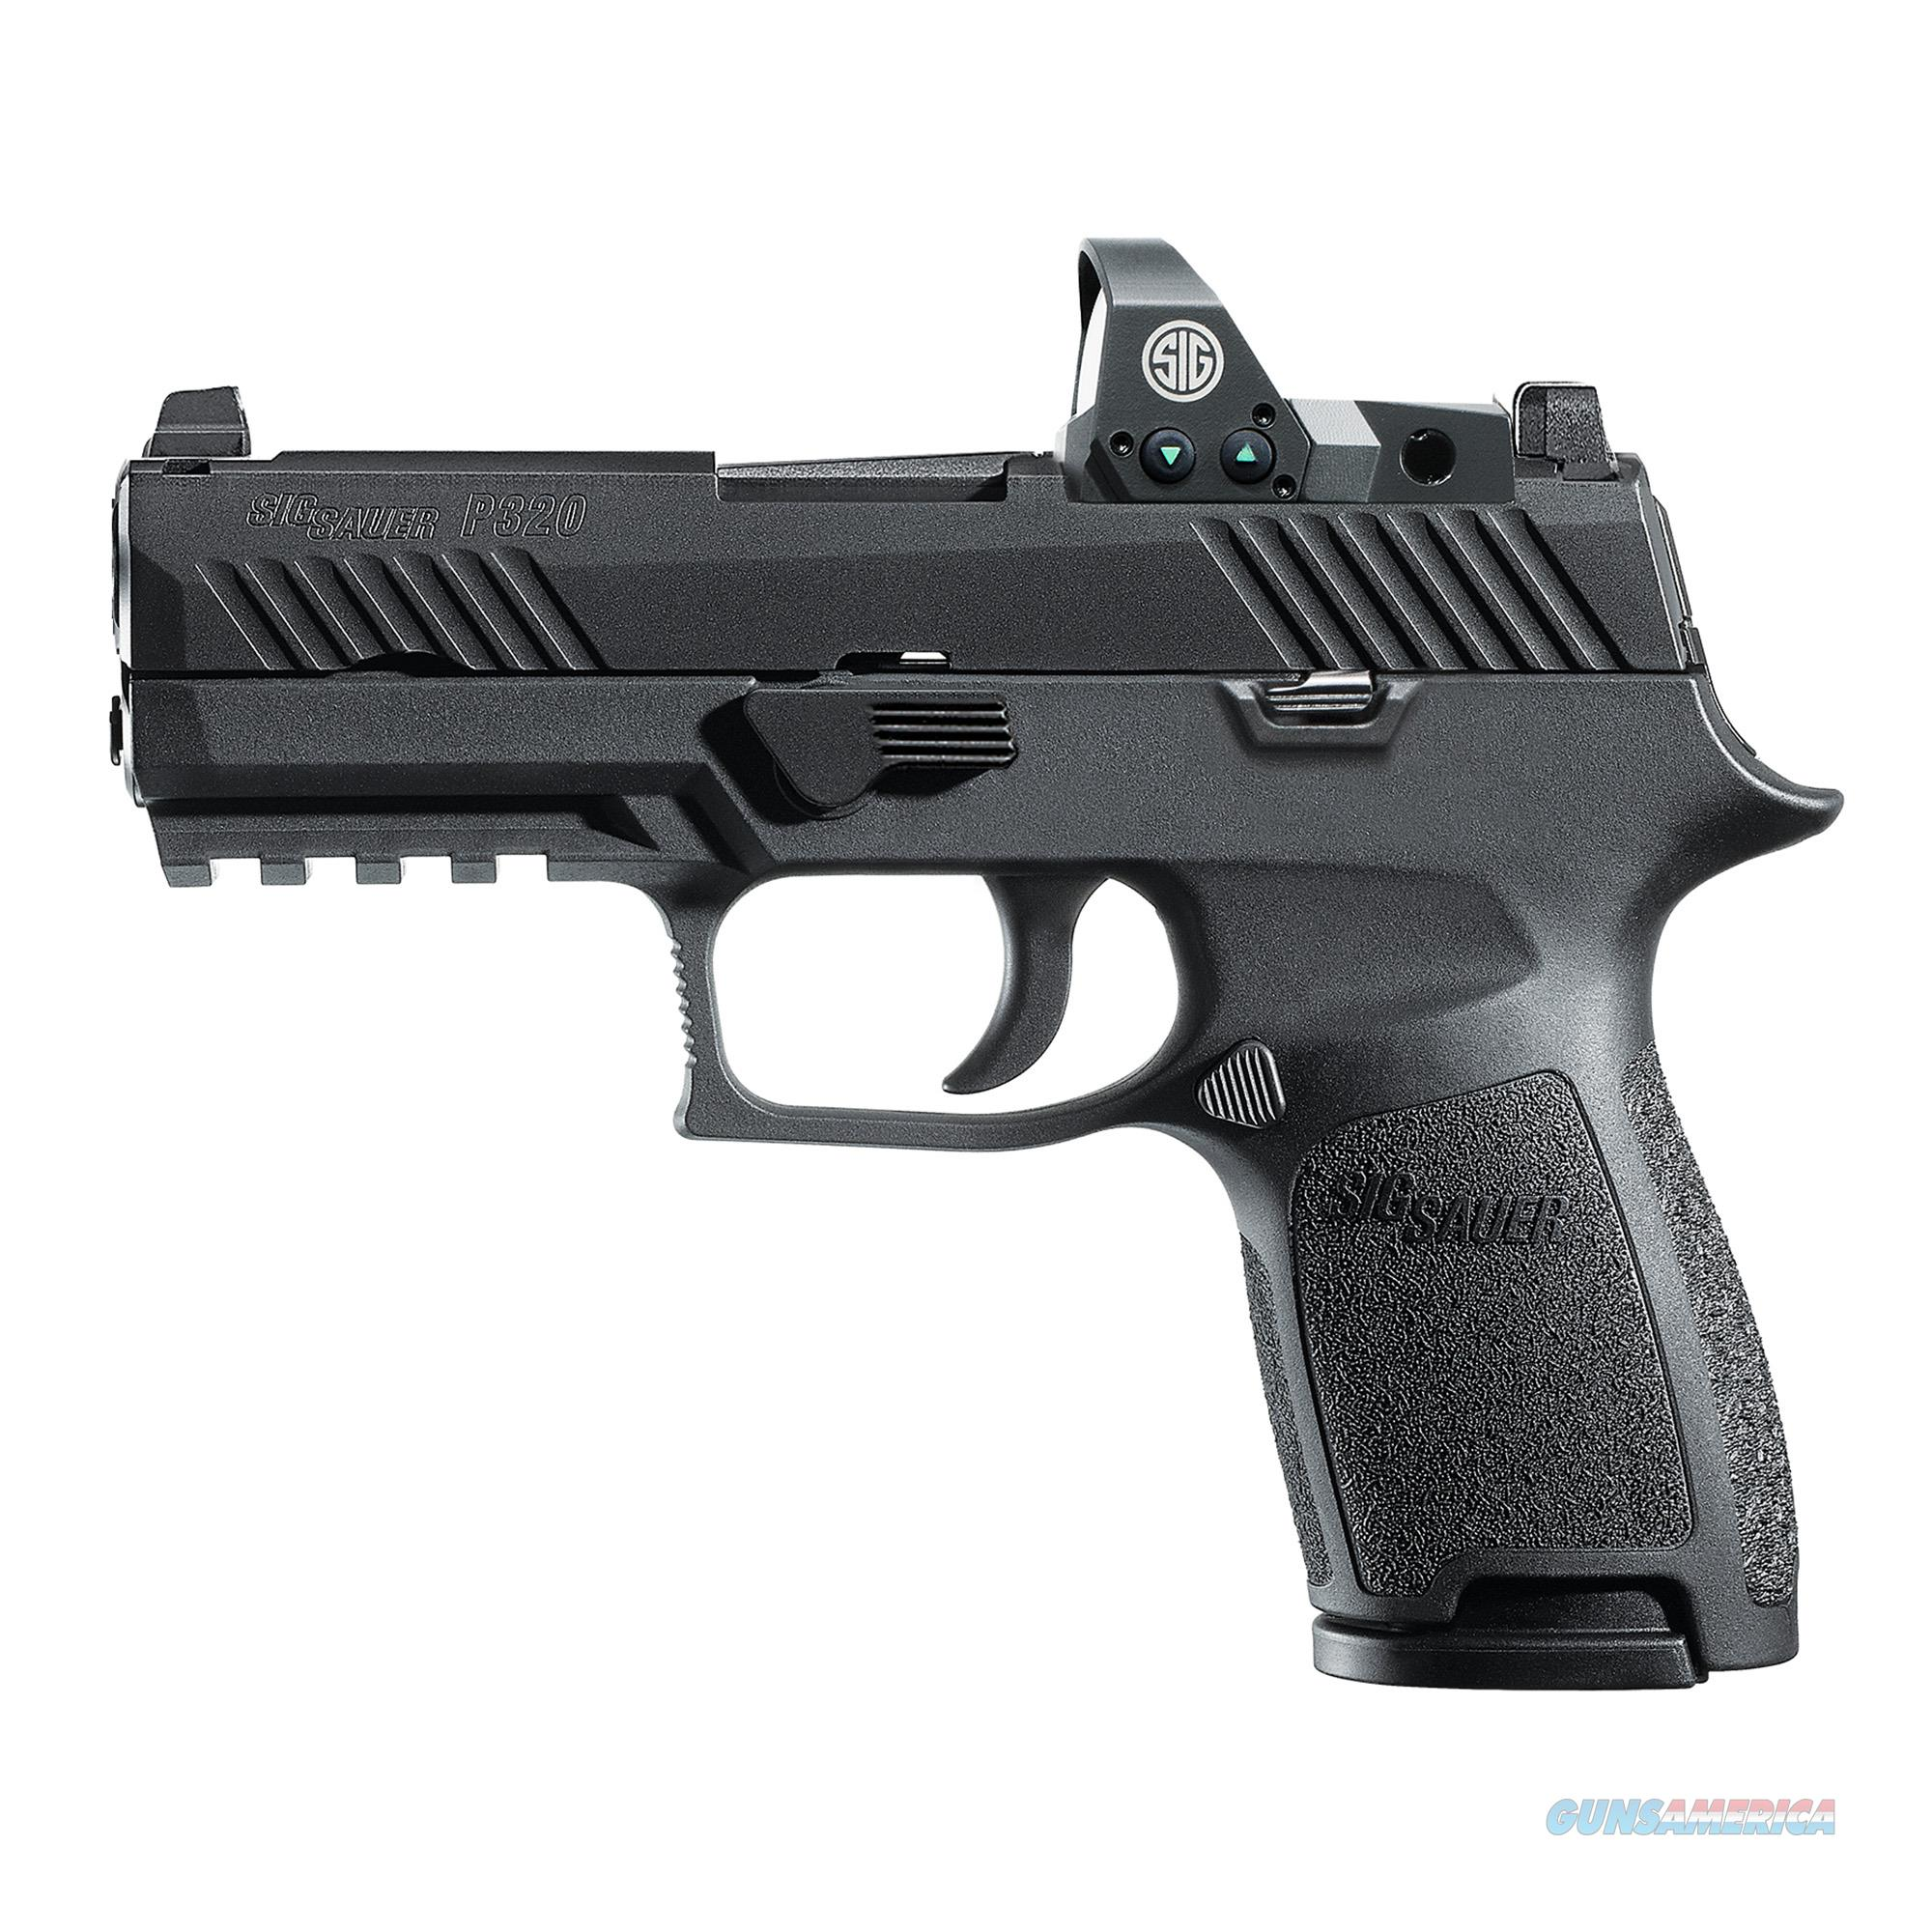 "Sig Sauer P320 RX Compact 9mm 3.9"" 15+1 - New in Case  Guns > Pistols > Sig - Sauer/Sigarms Pistols > P320"